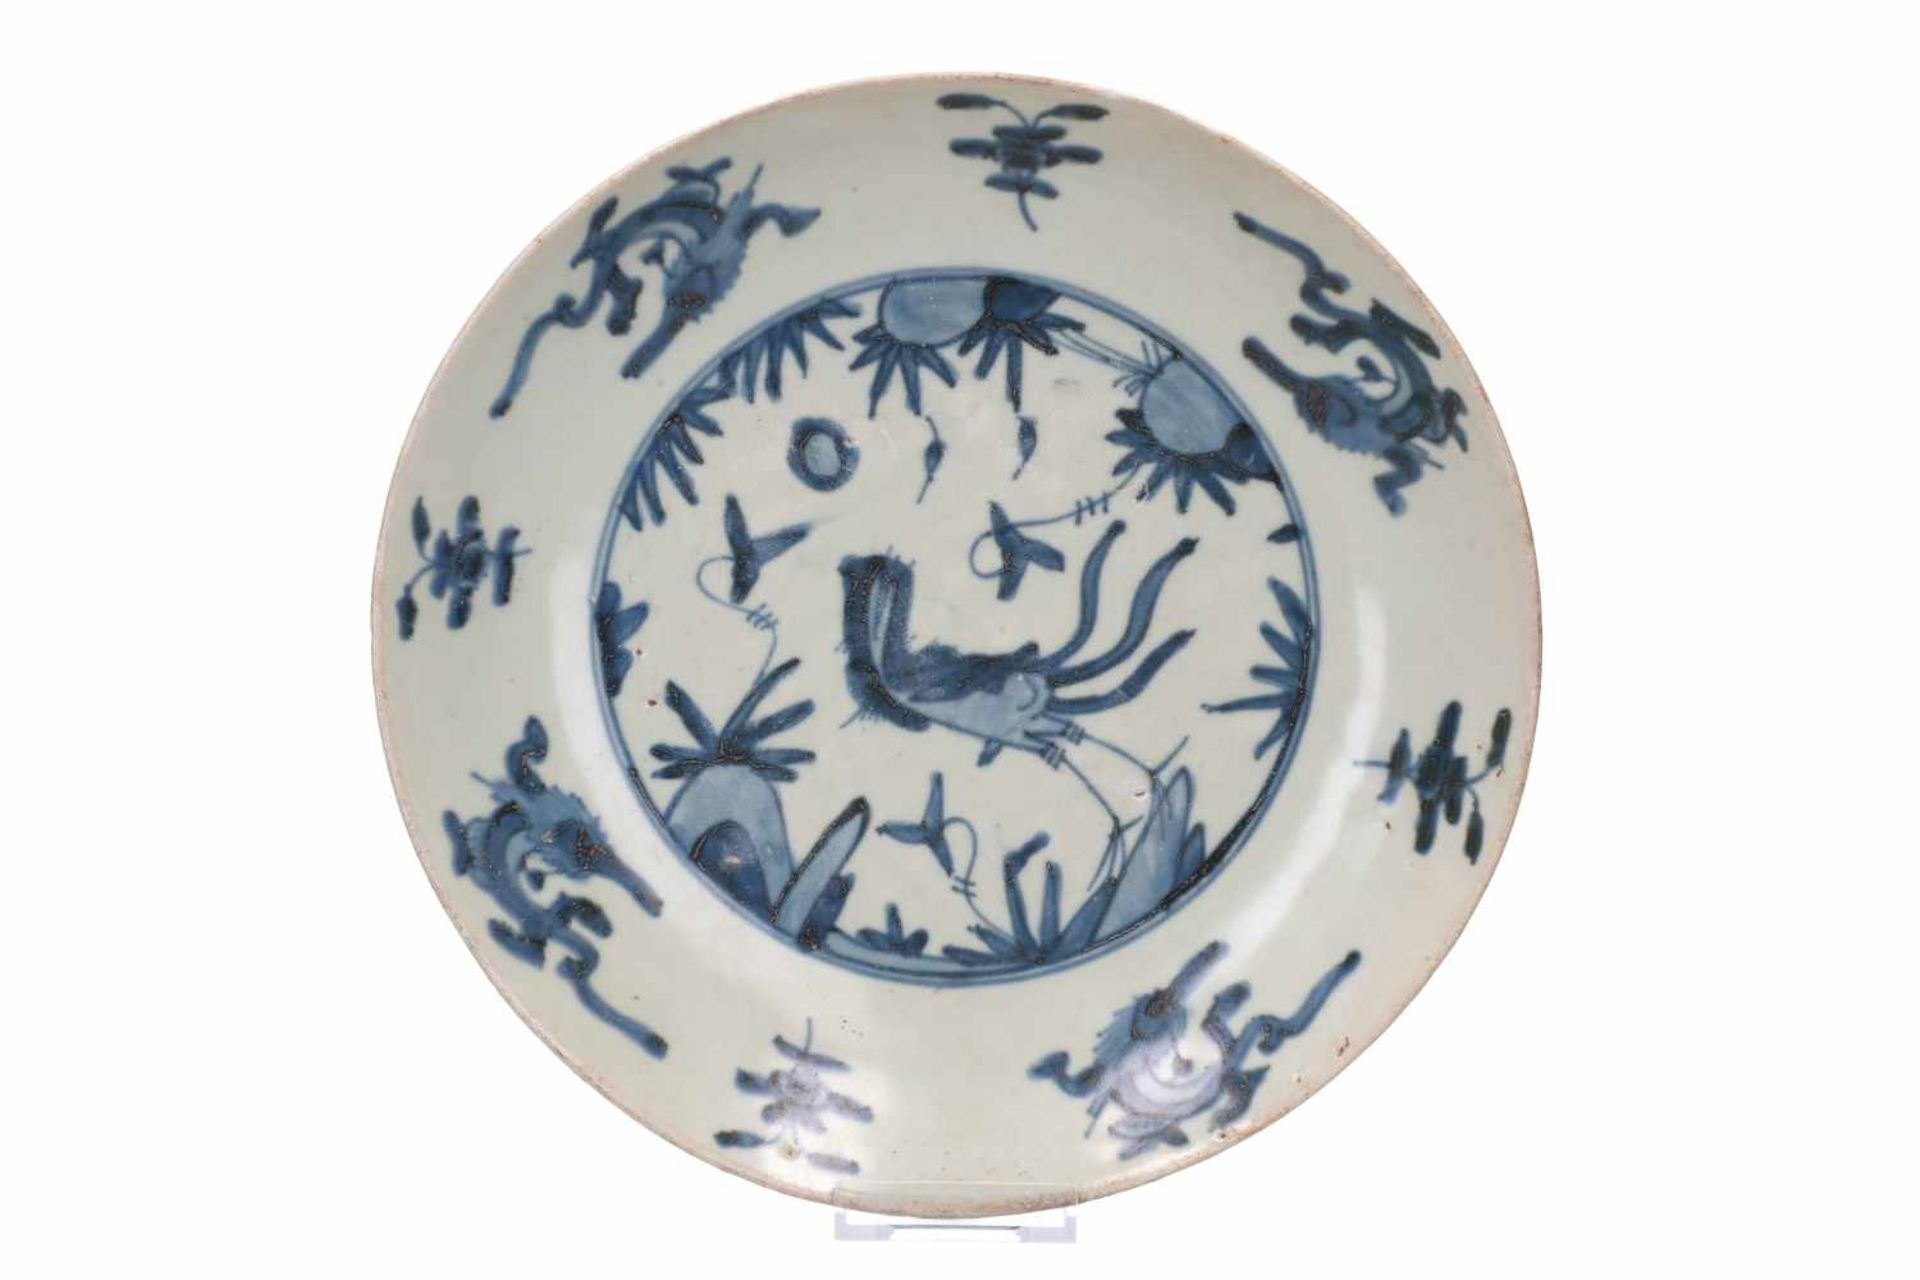 Lot of three blue and white Swatow porcelain chargers, decorated with flowers and animals. One - Bild 3 aus 8